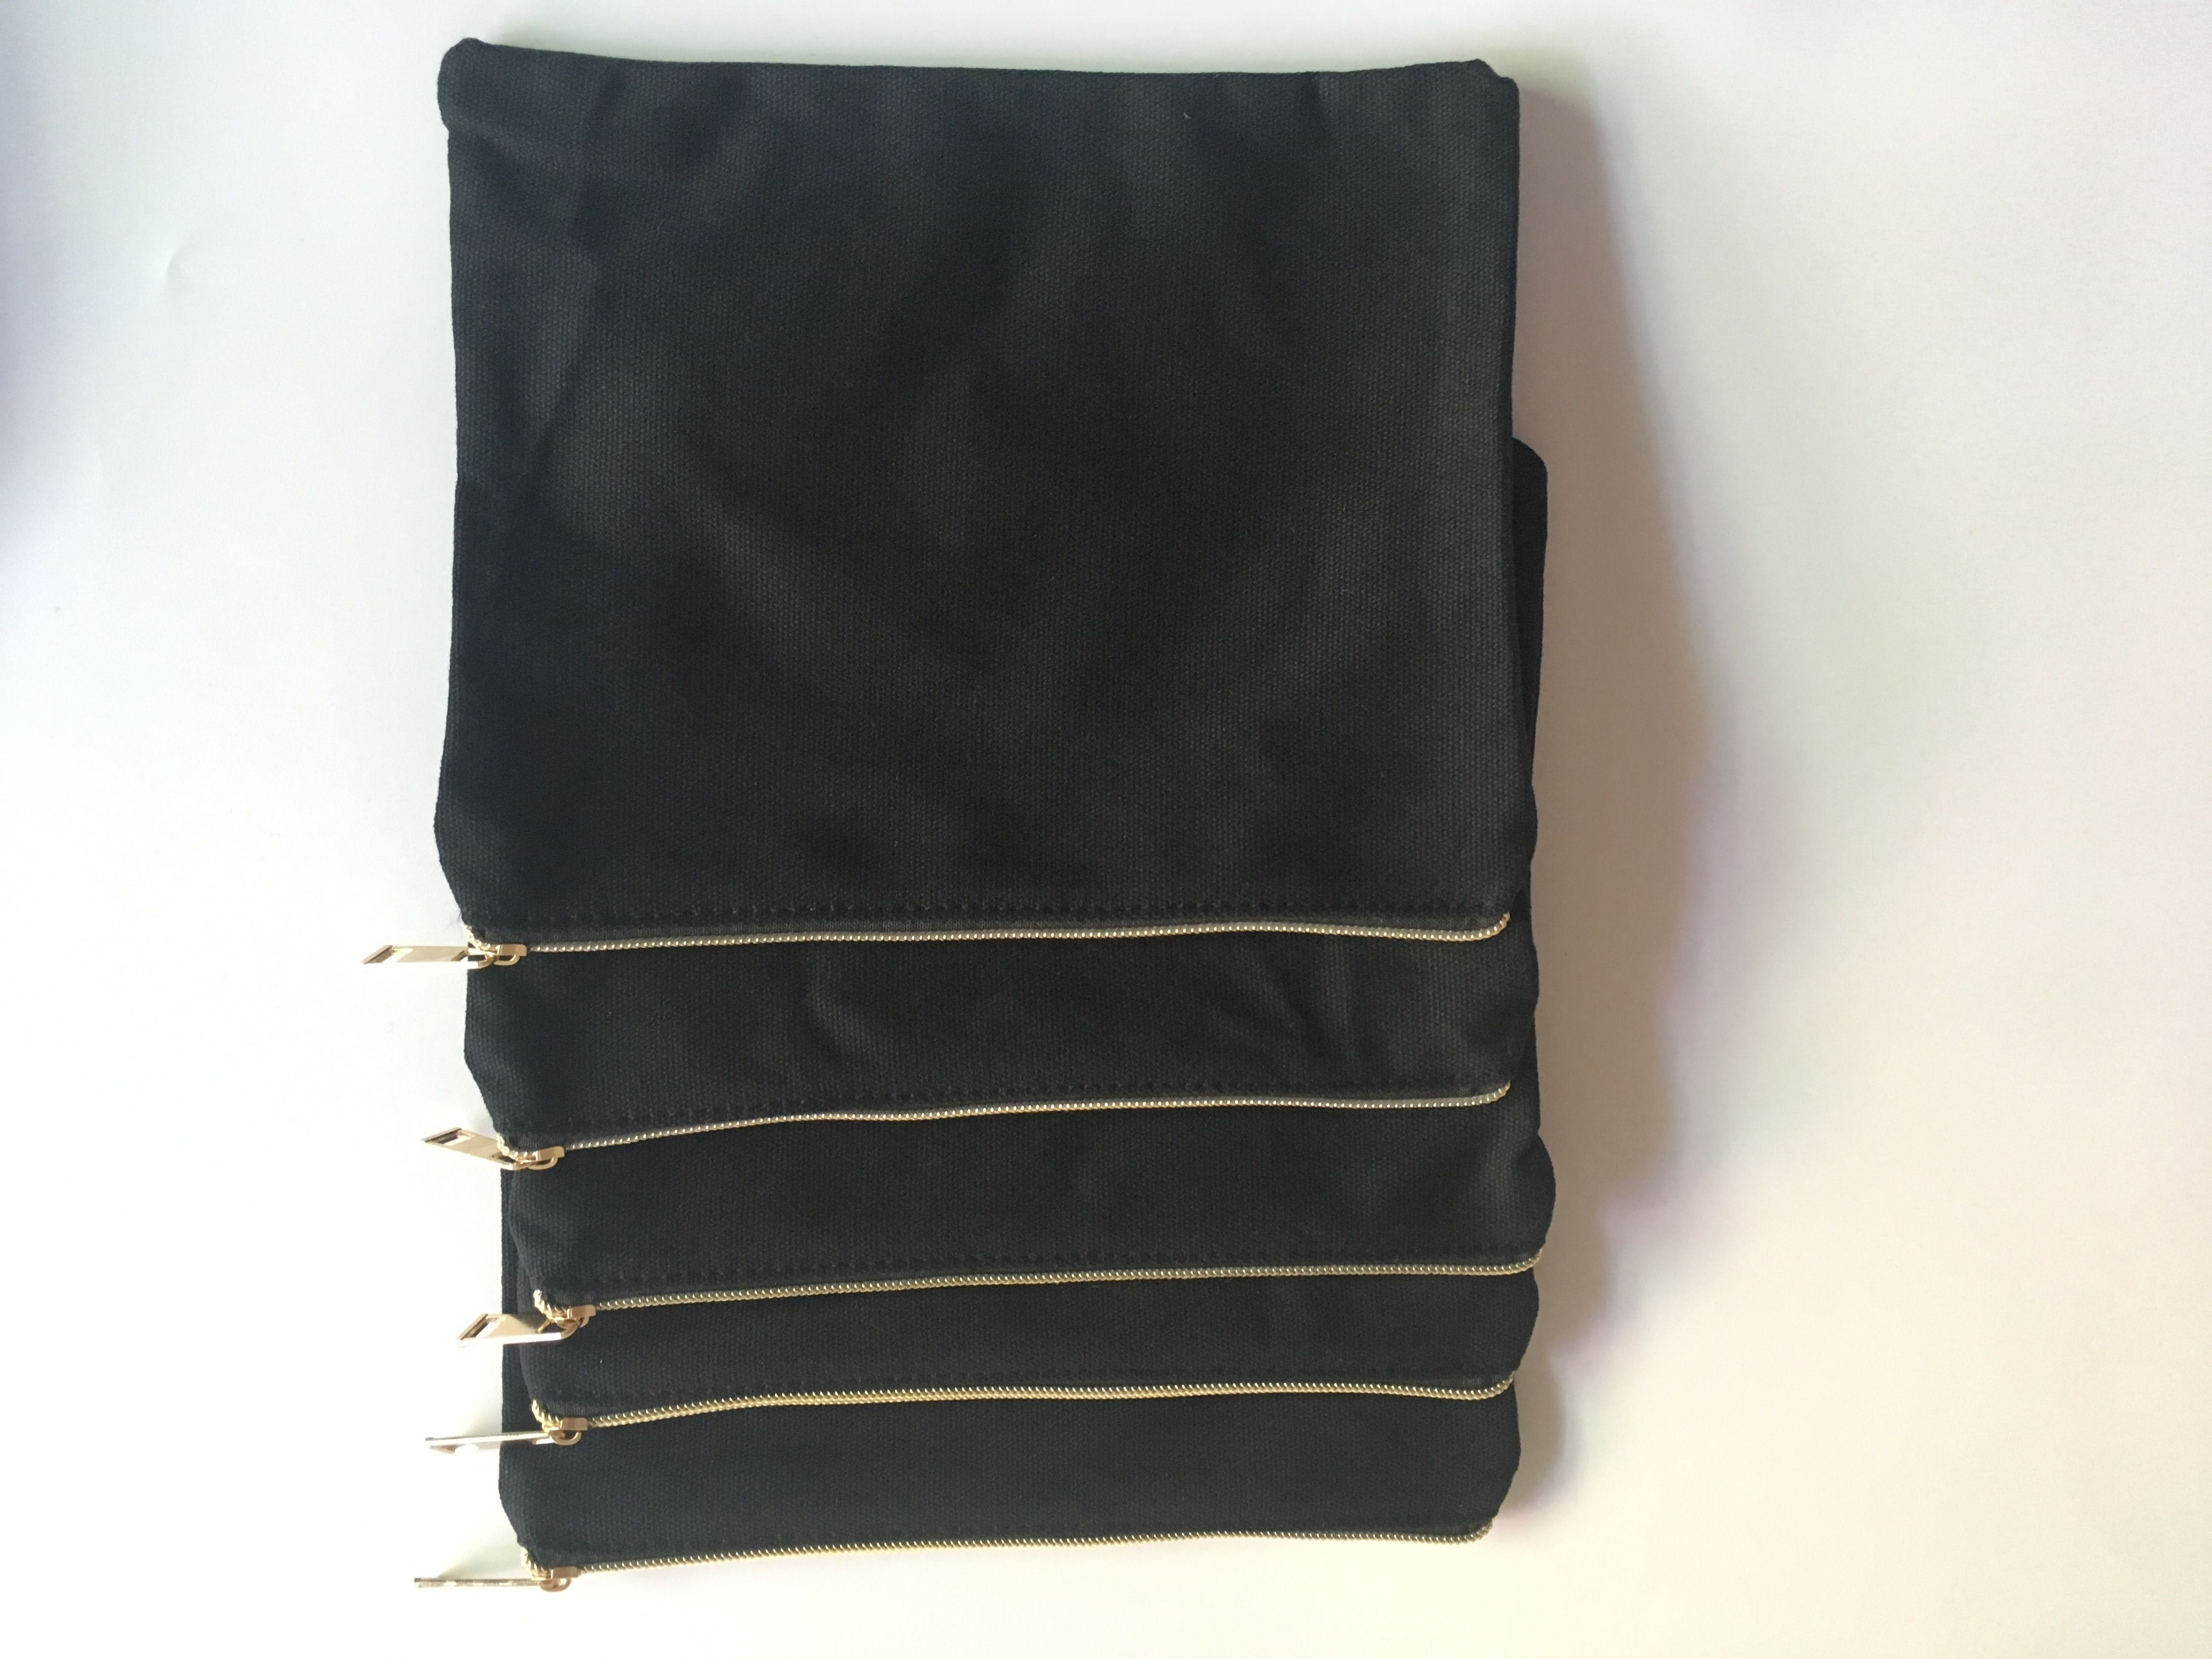 9*7 inch blank wholesale cosmetic bag Cotton bag